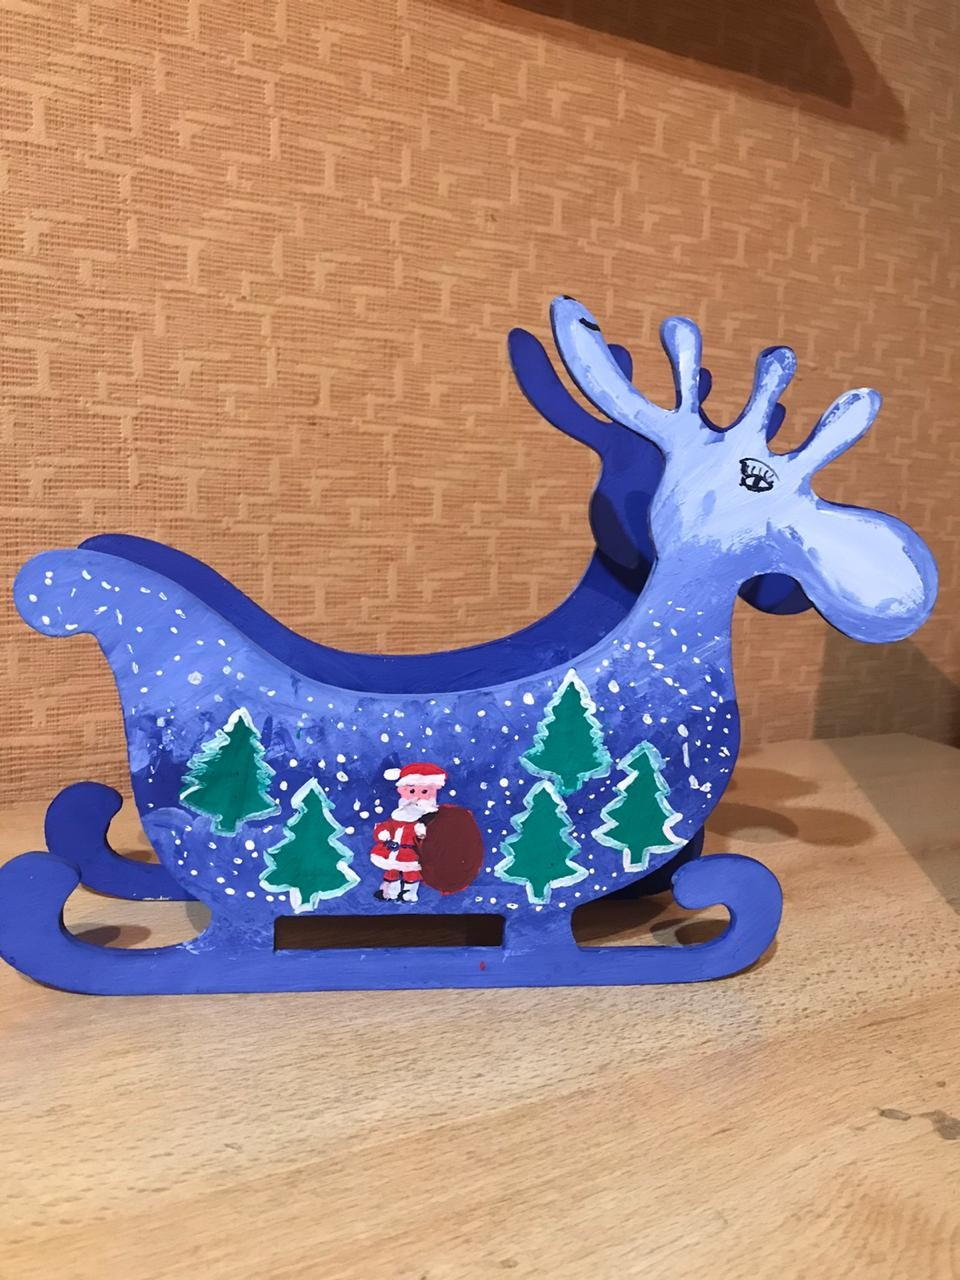 Laser Cut Deer Candy Dish Sleigh Bowl Table Decoration Free CDR Vectors Art